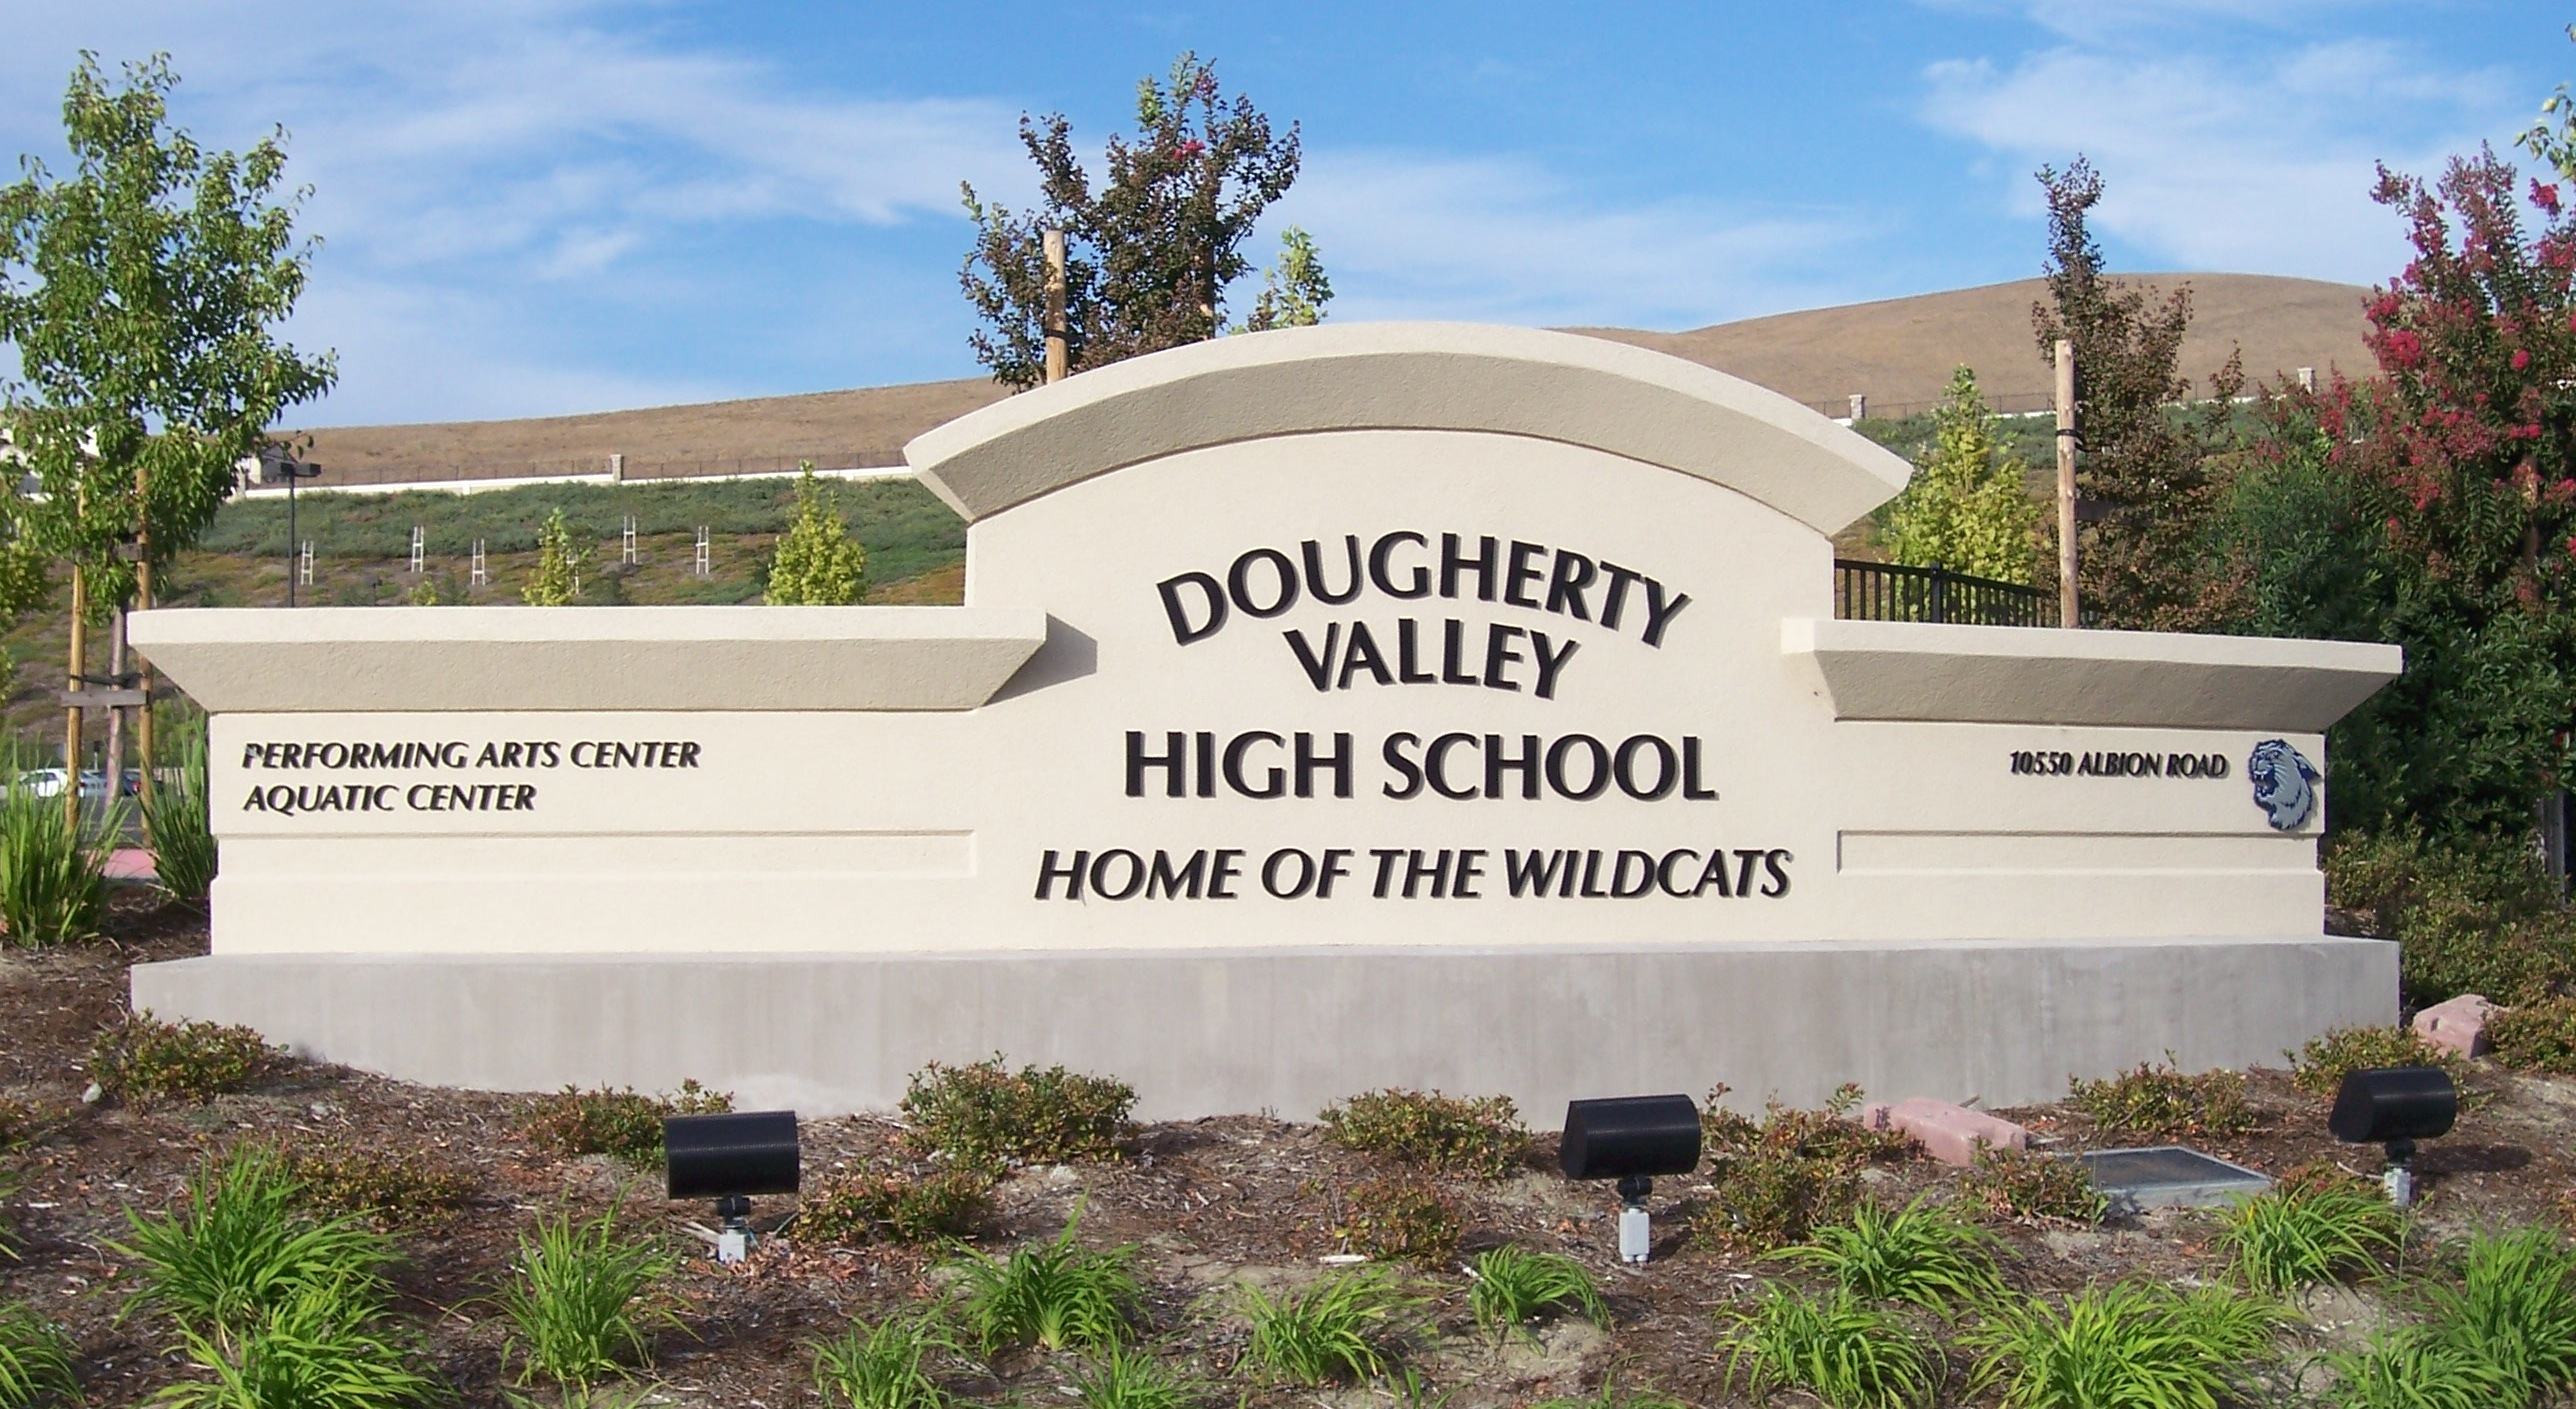 Dougherty Valley High School Wikipedia